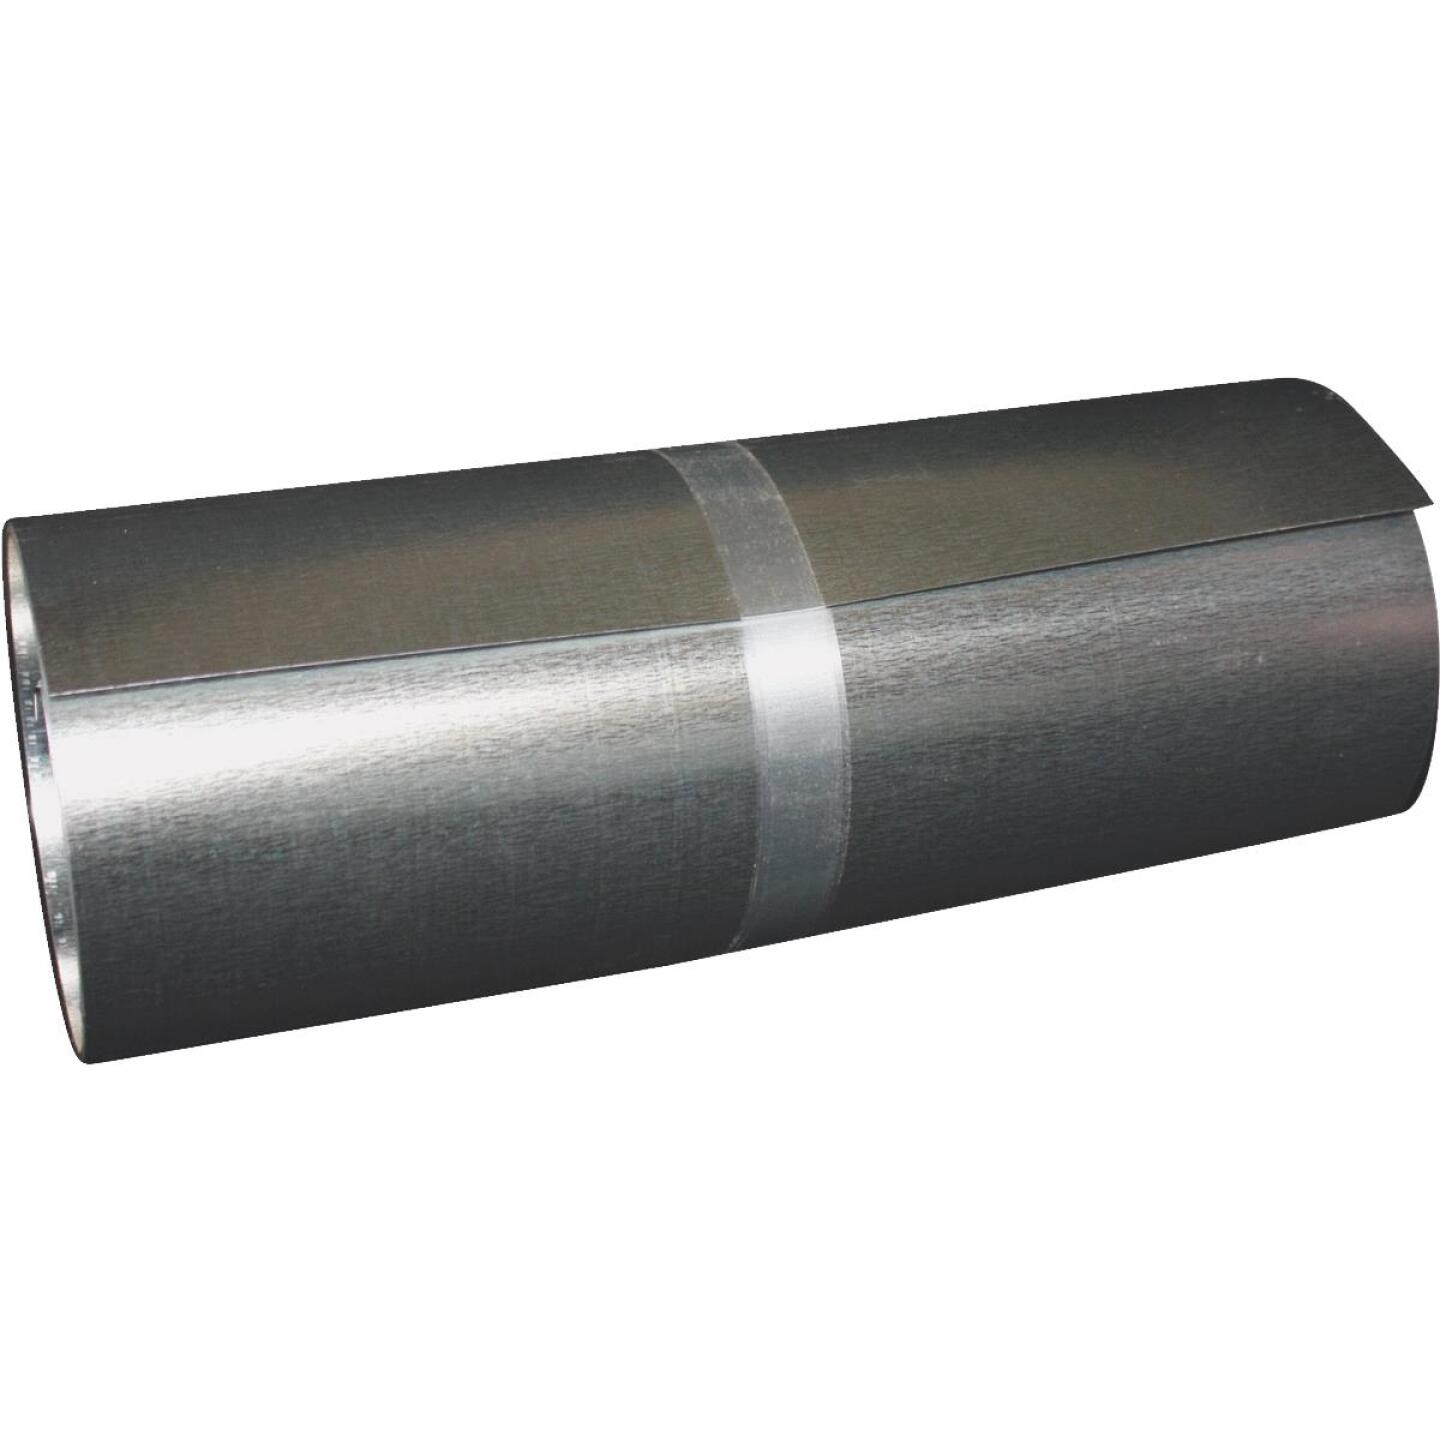 Klauer 14 In. x 25 Ft. Mill Galvanized Roll Valley Flashing Image 1